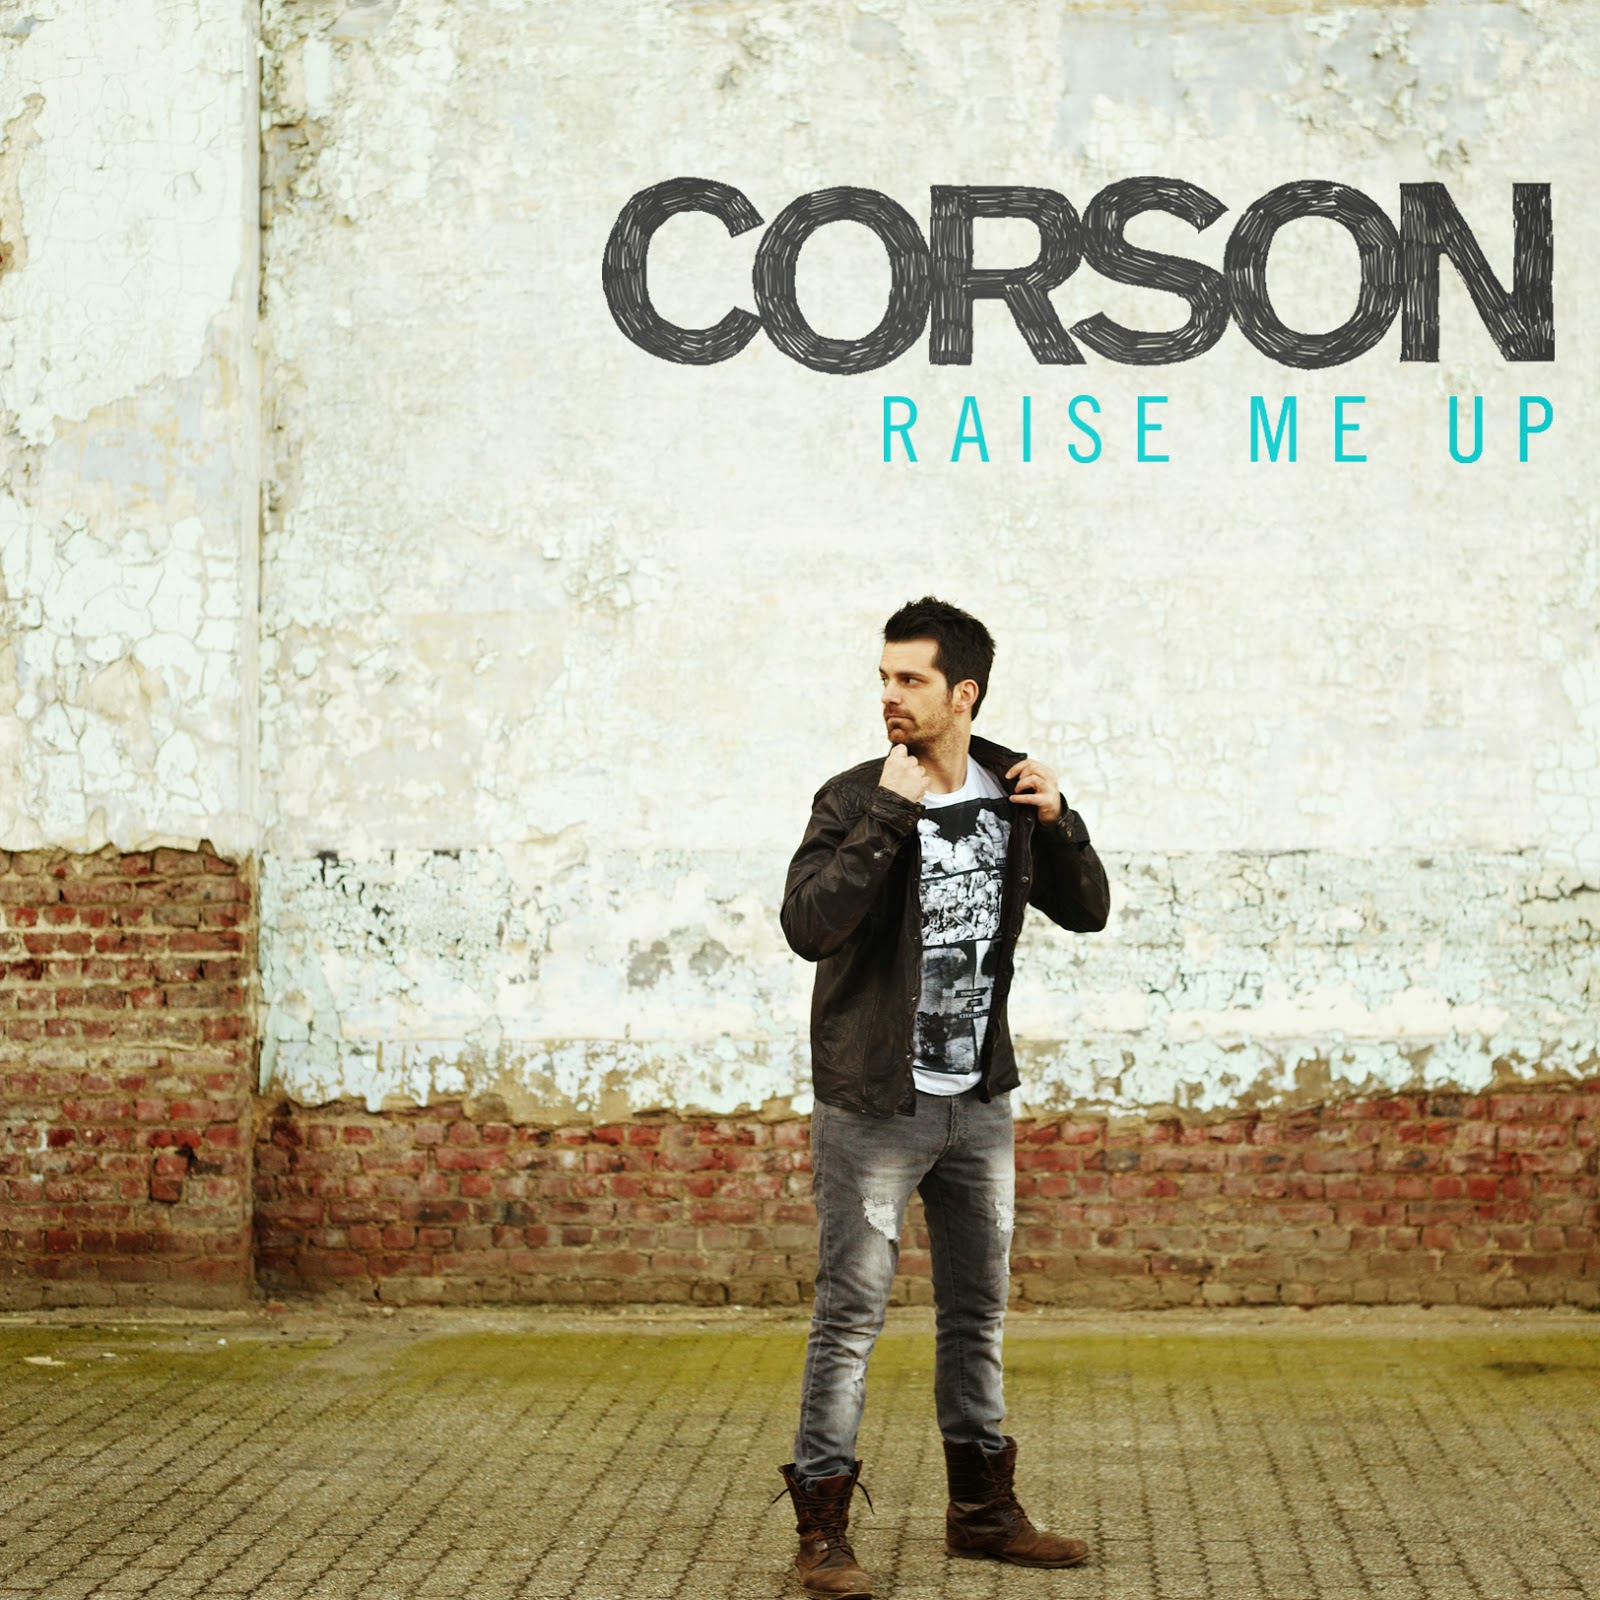 CORSON-RAISE ME UP HD